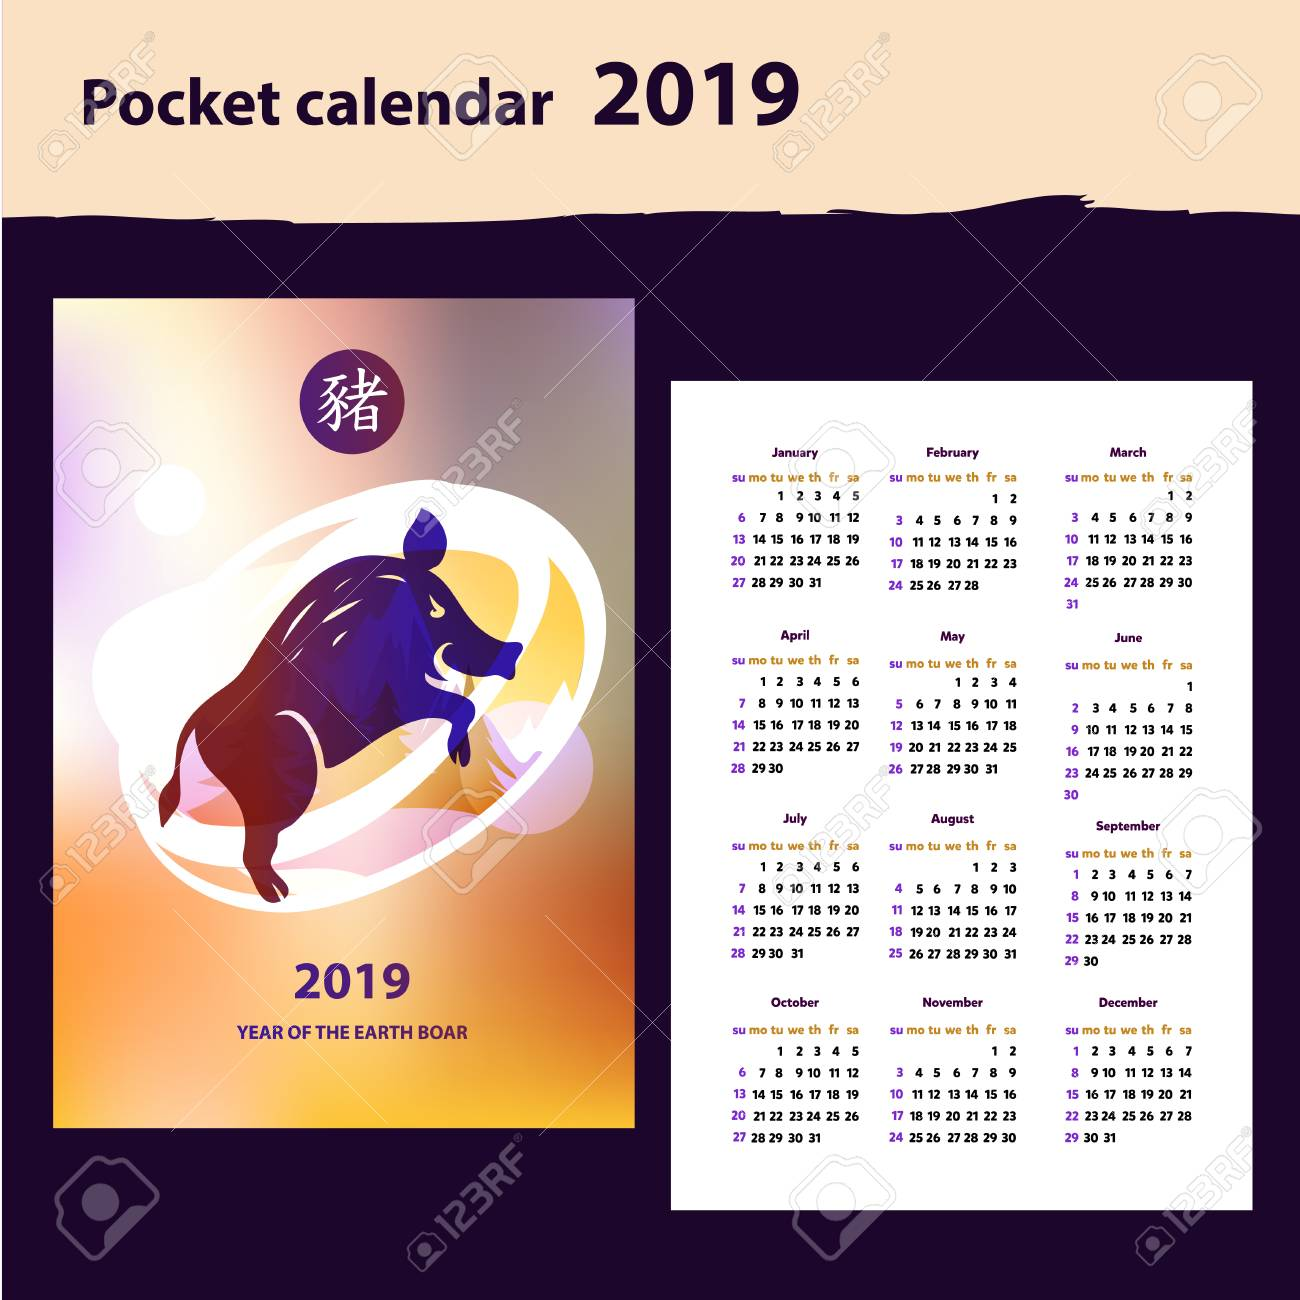 Chinese Fortune Calendar for 2019 Chinese Zodiac, Horoscope, Astrology